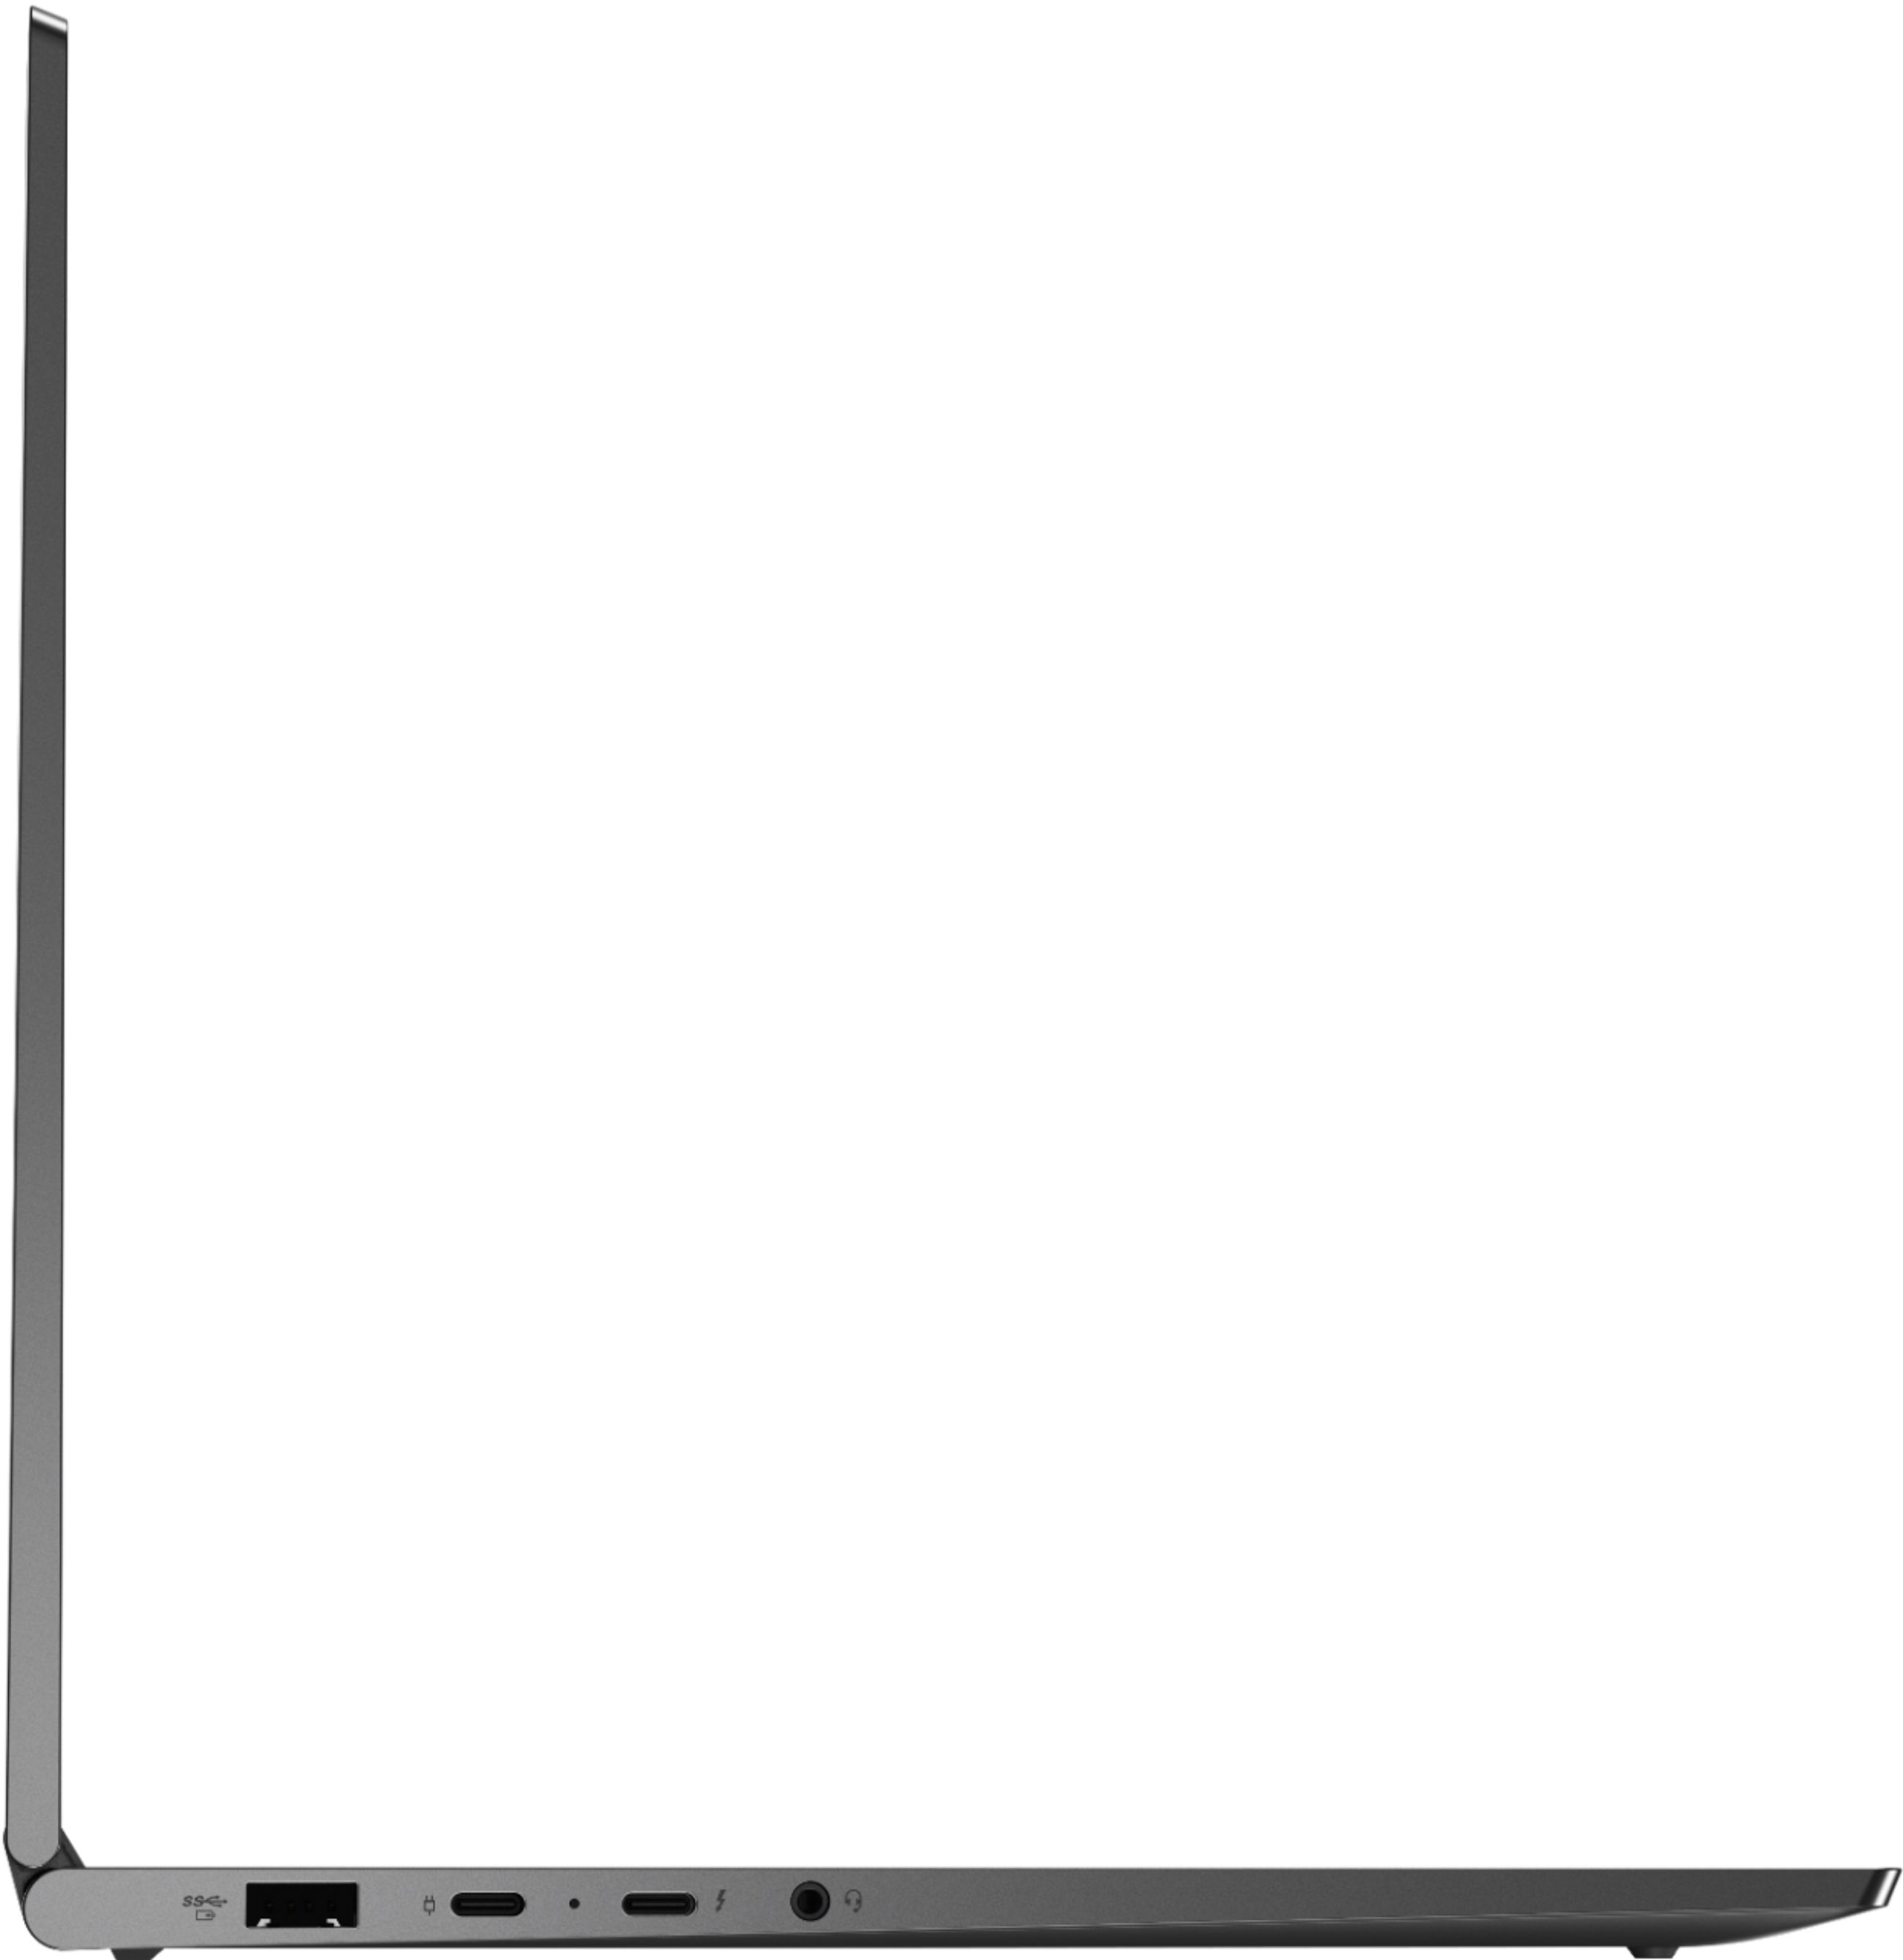 "Alt View Zoom 10. Lenovo - Geek Squad Certified Refurbished Yoga C940 2-in-1 14"" Laptop - Intel Core i7 - 12GB Memory - 512GB Solid State Drive - Iron Gray."